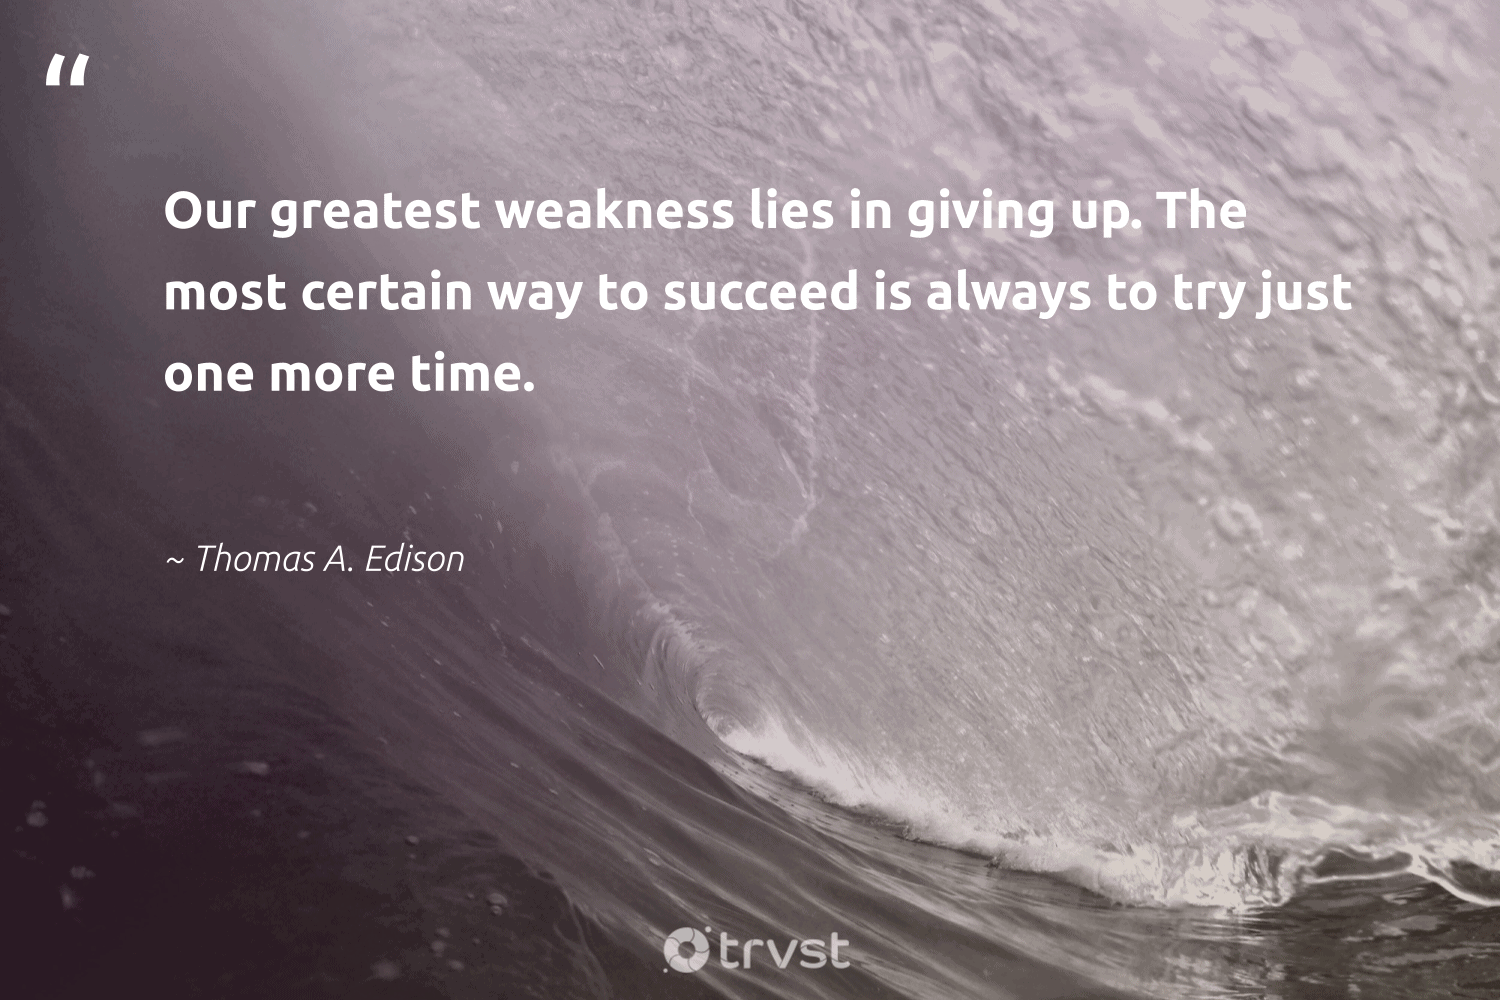 """""""Our greatest weakness lies in giving up. The most certain way to succeed is always to try just one more time.""""  - Thomas A. Edison #trvst #quotes #begreat #bethechange #softskills #socialimpact #futureofwork #planetearthfirst #nevergiveup #dosomething #dotherightthing #takeaction"""